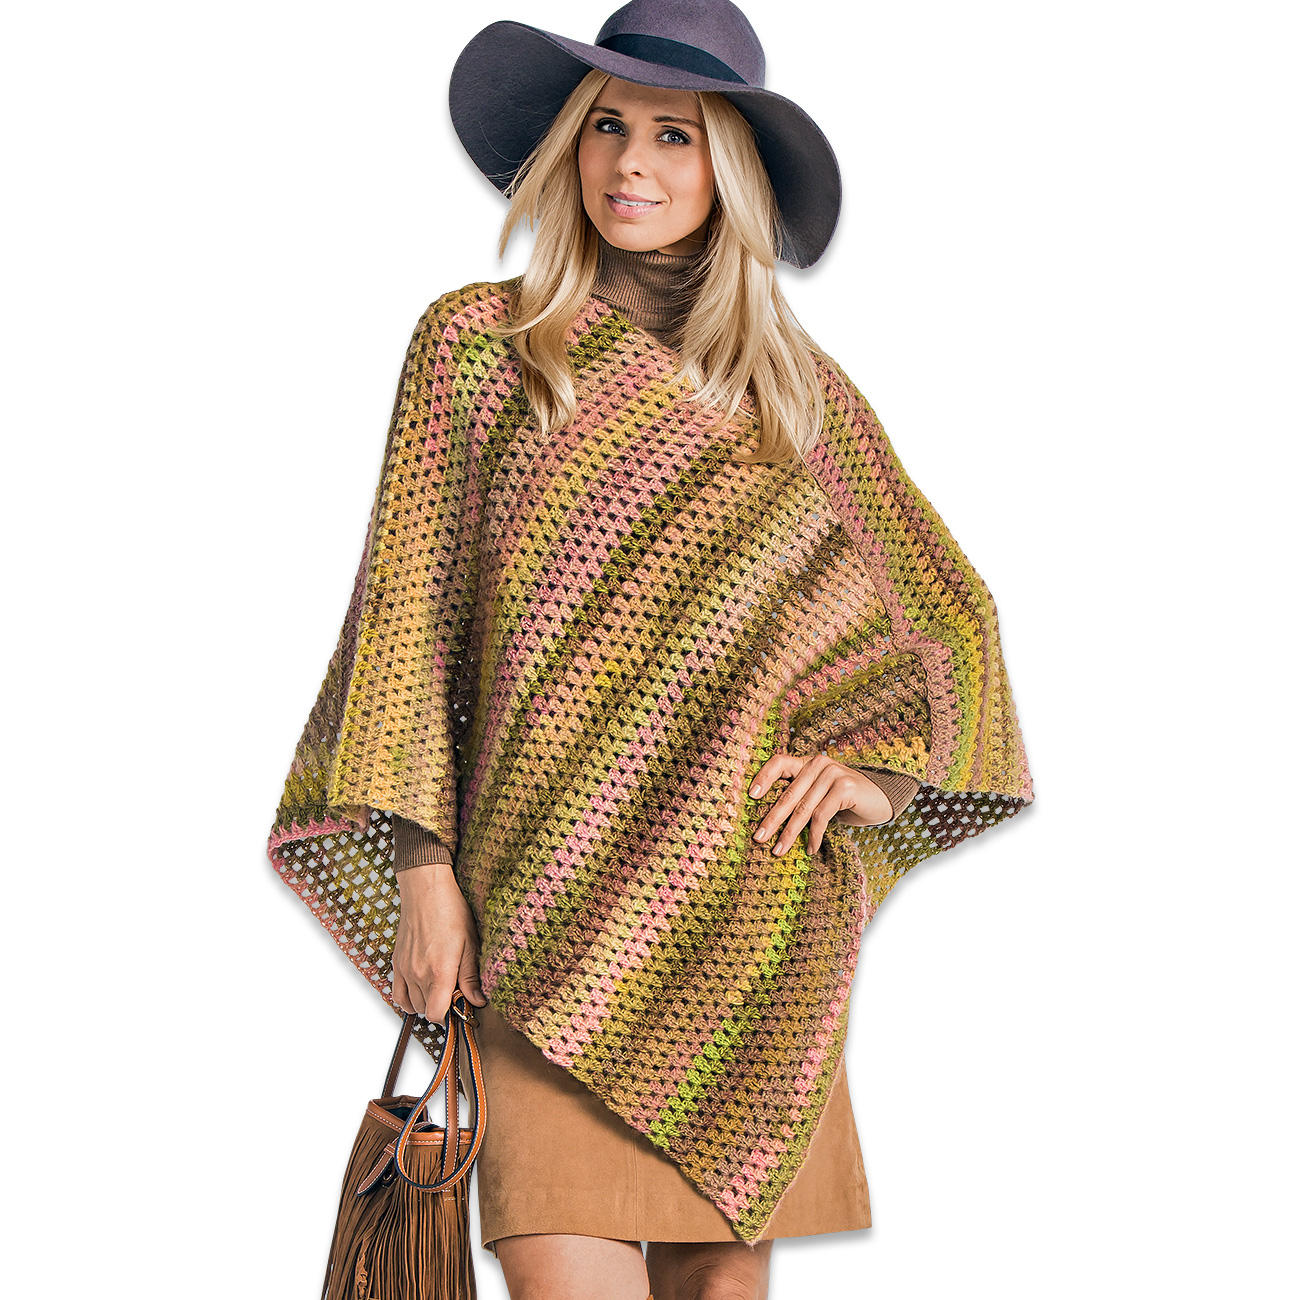 Anleitung 387 6 poncho aus scala von junghans wolle 1 - Junghanns wolle ...